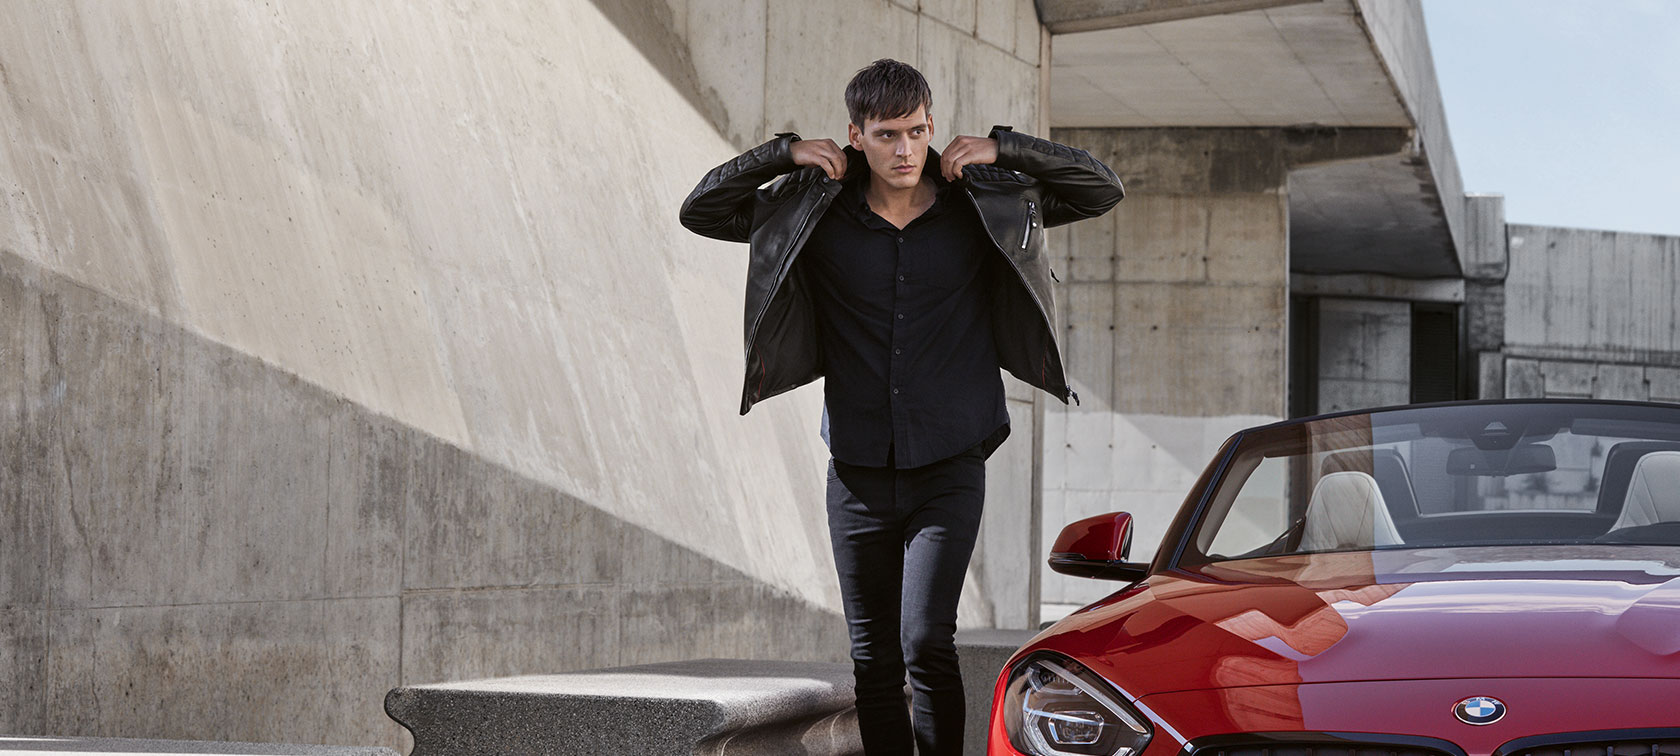 A man is shown wearing a BMW Men's Leather Jacket from the BMW Collection.